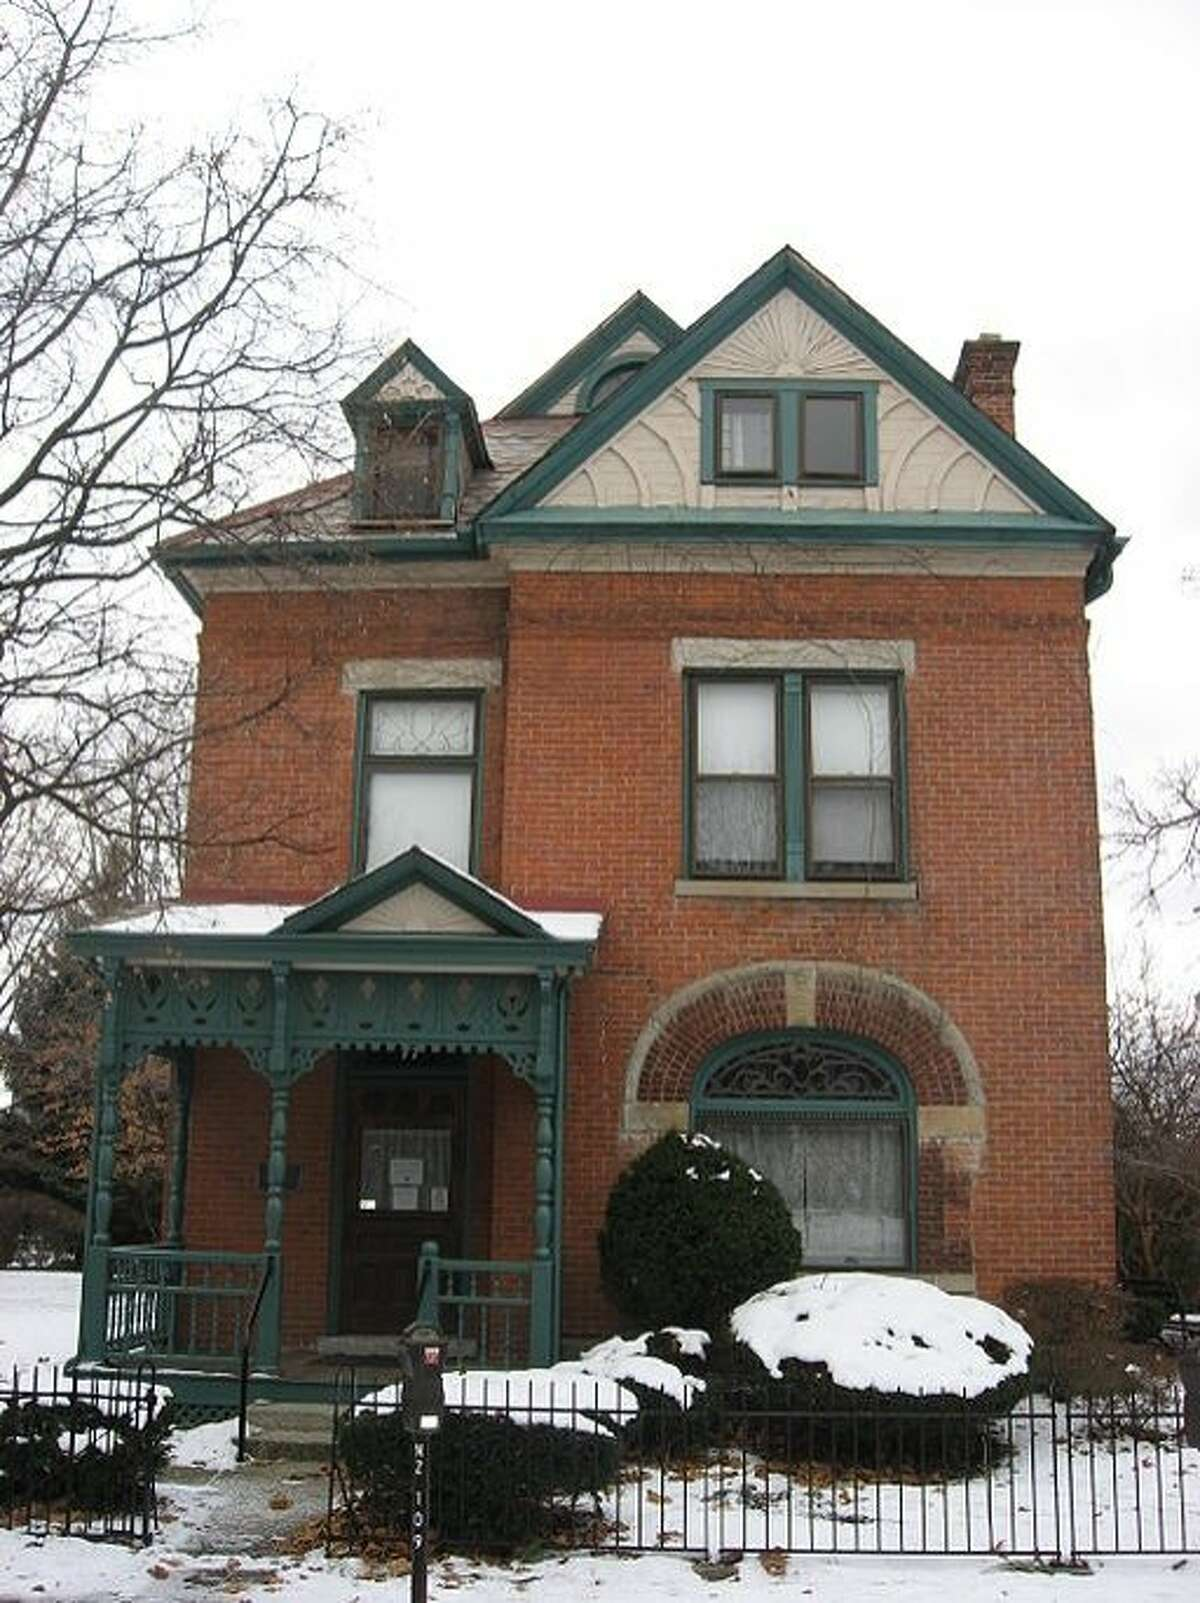 Front of the James Thurber House, located at 77 N. Jefferson Avenue in Columbus, Ohio. Built in 1873, it is listed on the National Register of Historic Places, and it is a part of a Register-listed historic district, the Jefferson Avenue Historic District.